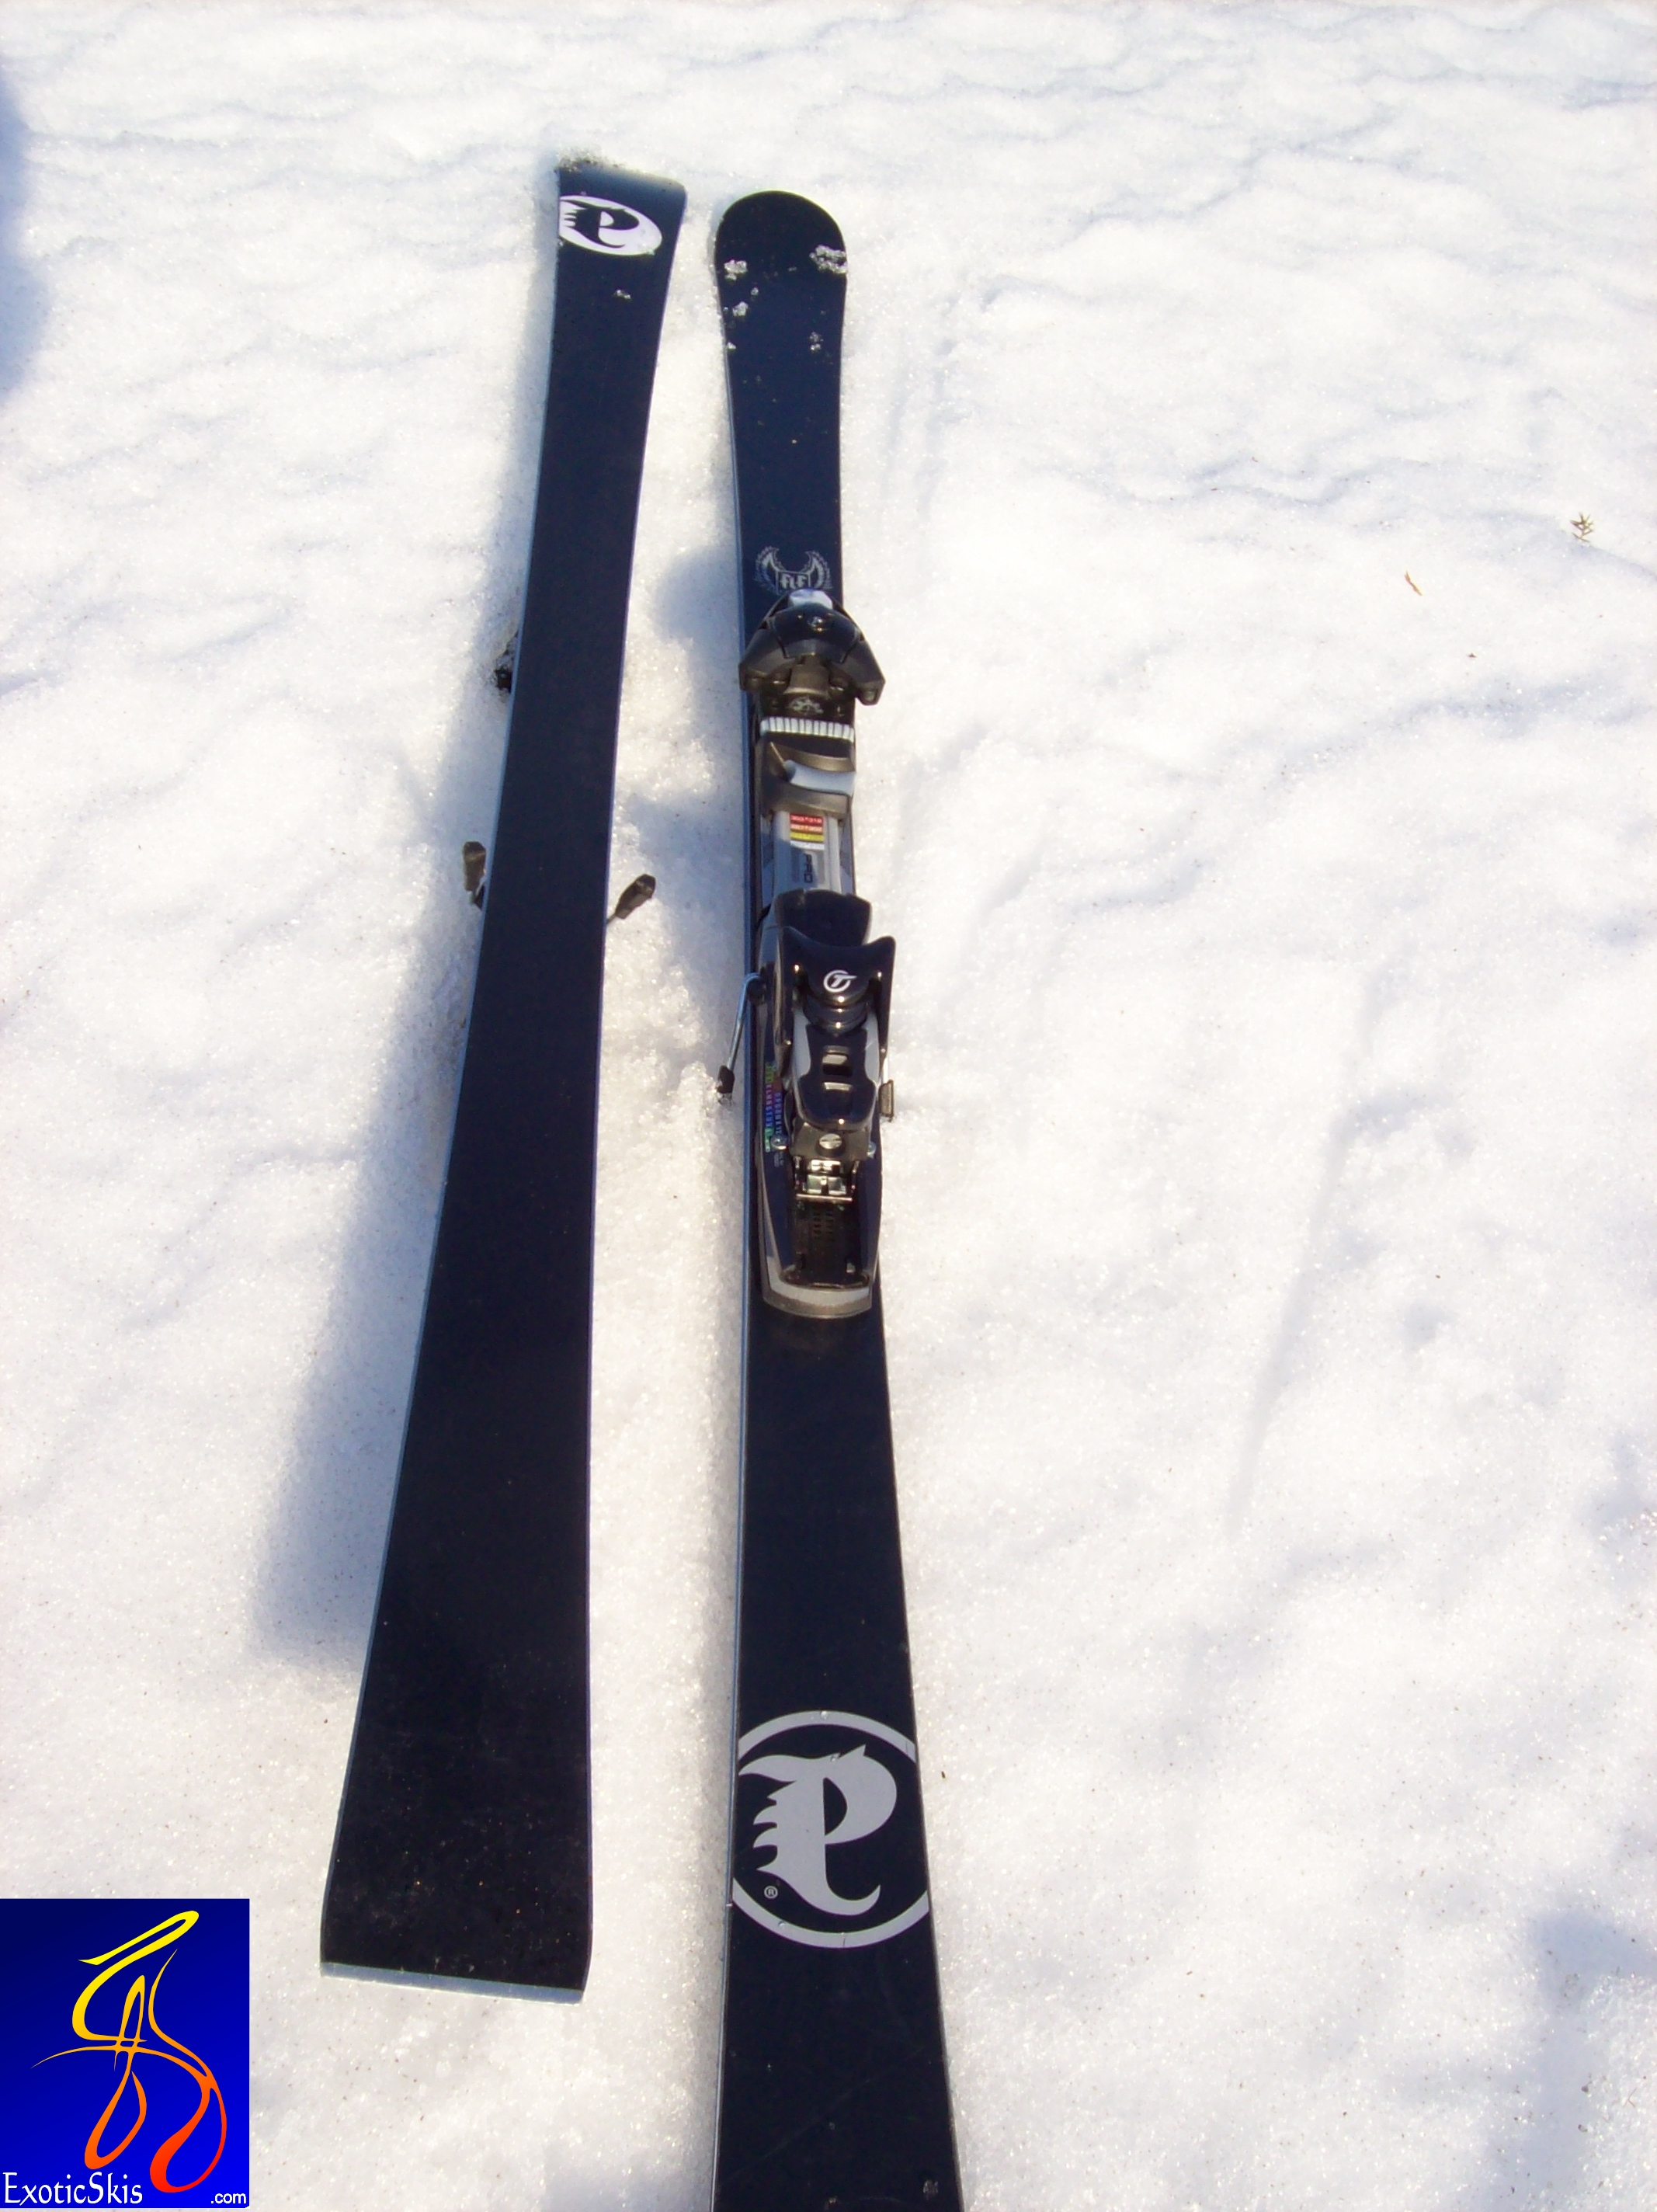 7f3e07cd0b9 Palmer P02 Carving Ski 171cm 2008-2009 - CARVING-SKI.de